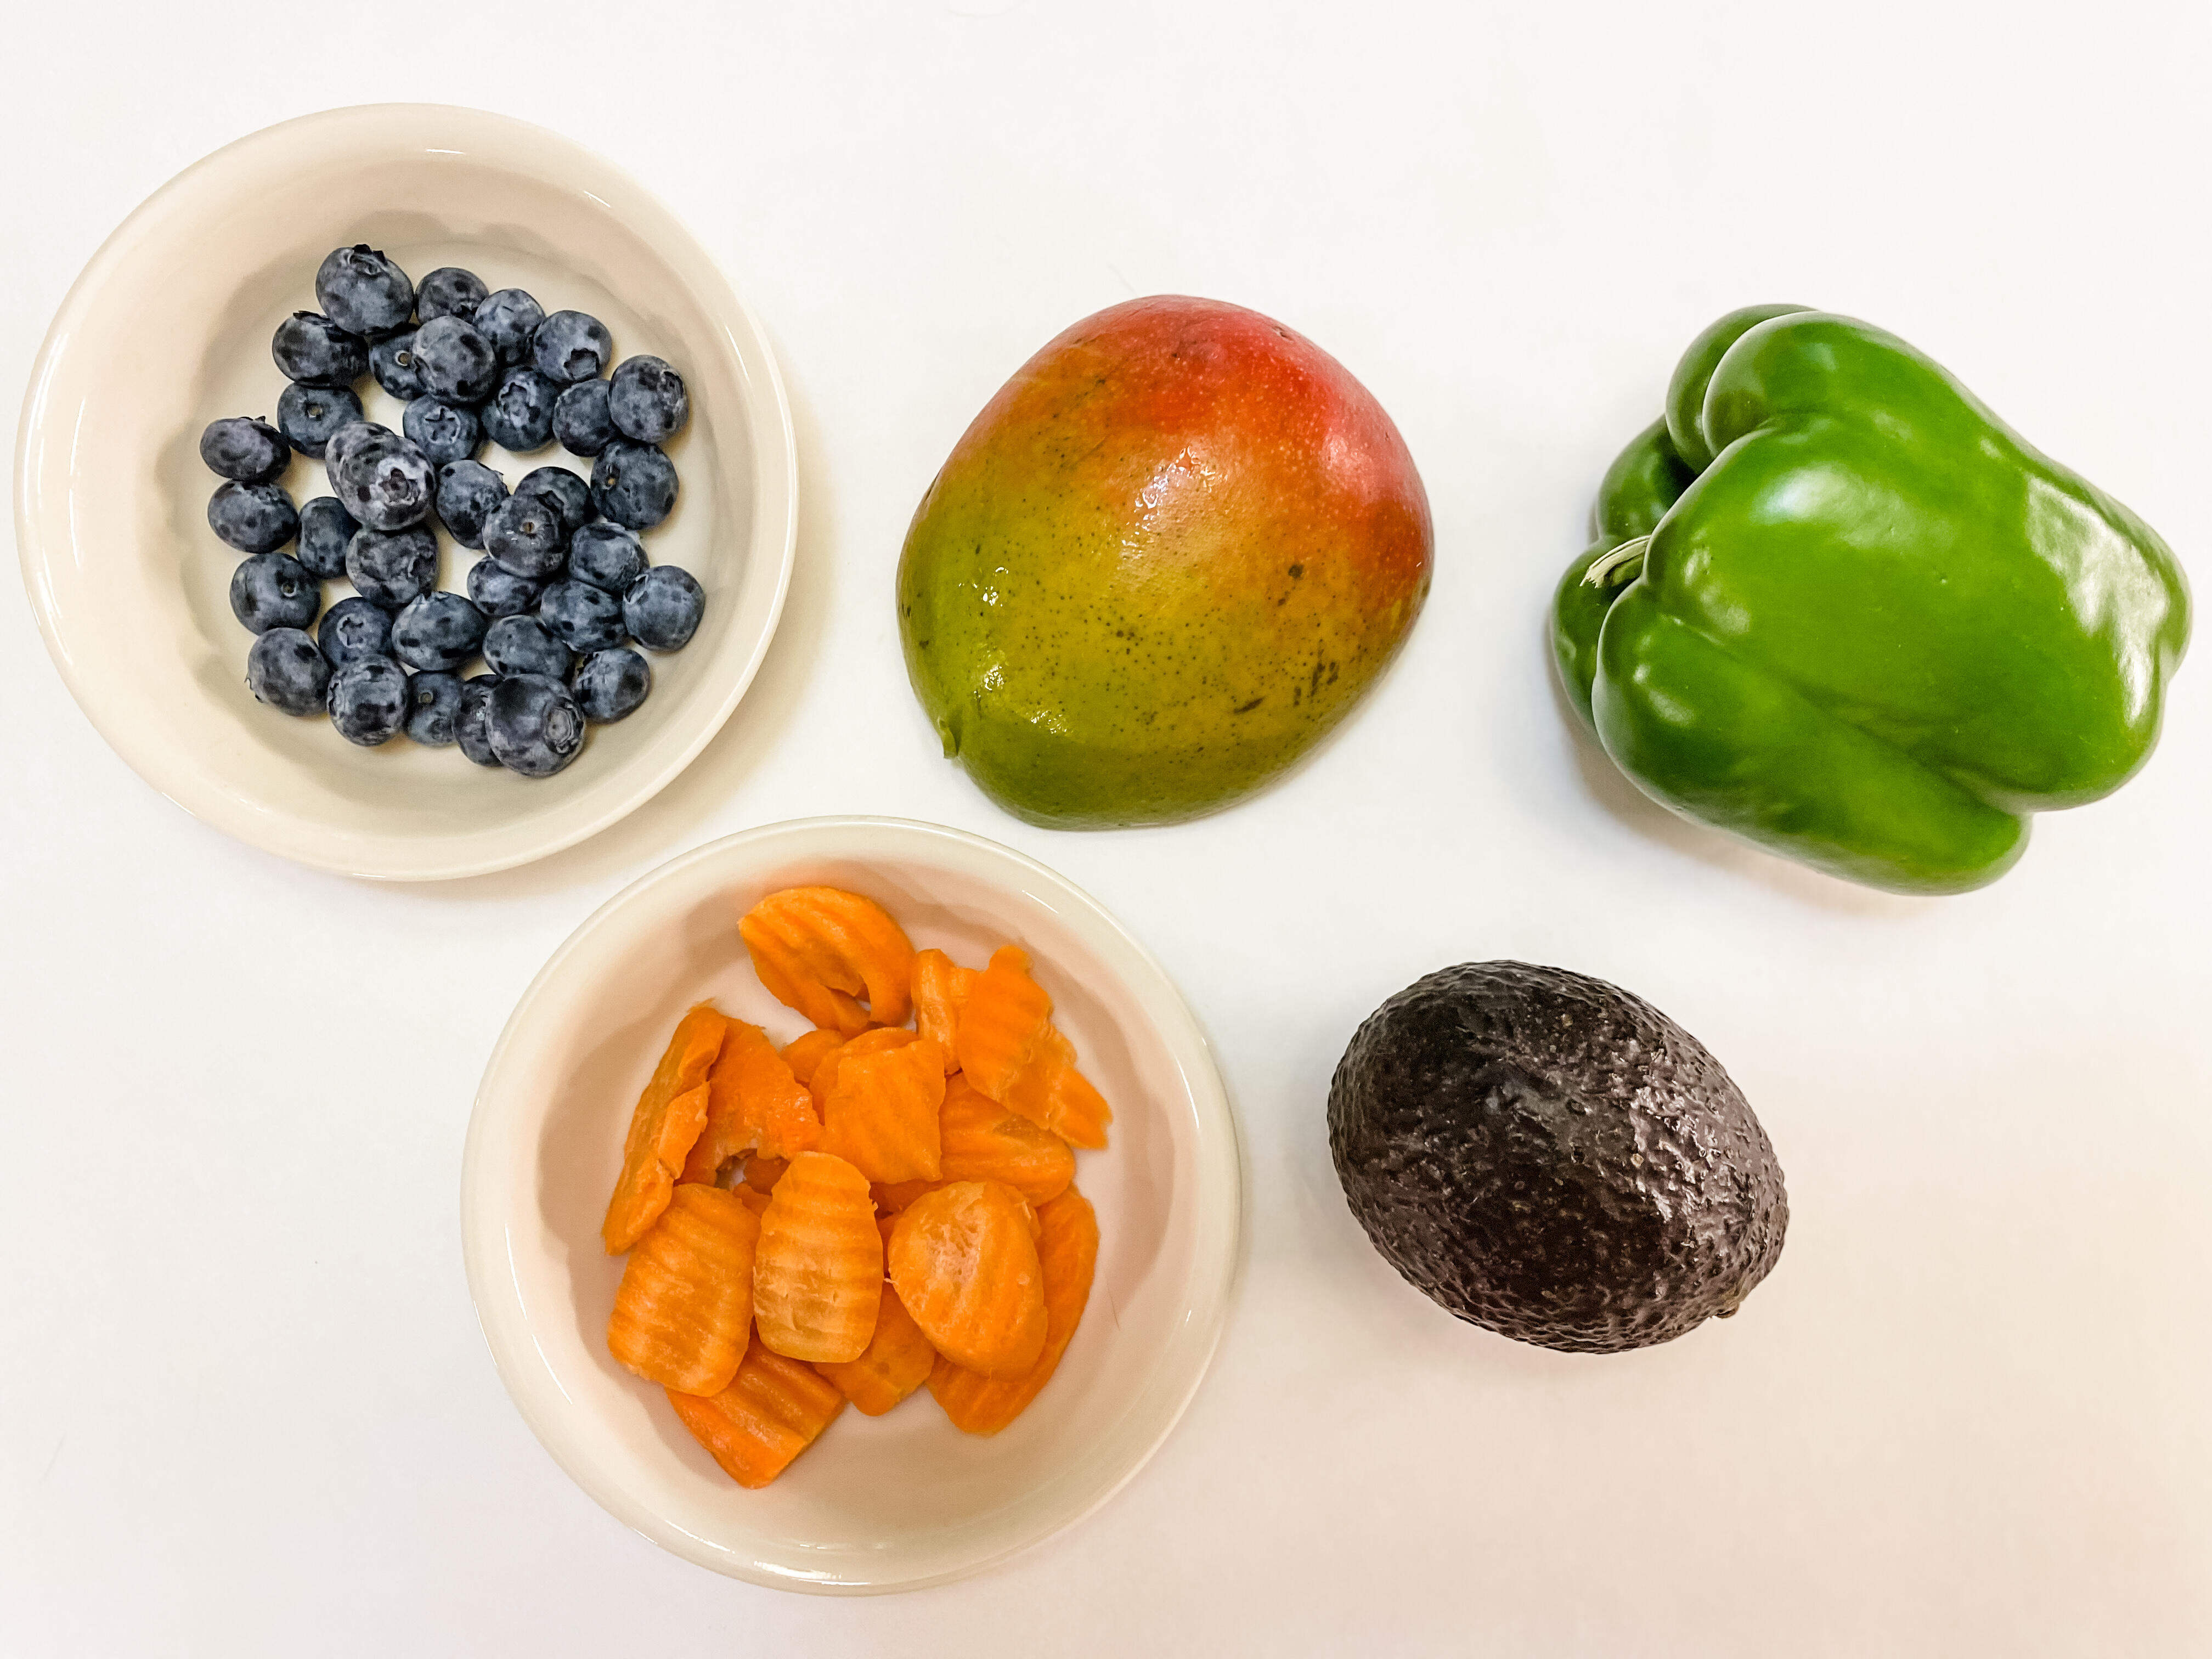 Five servings of produce: half a cup of blueberries, half a mango, a bell pepper, an avocado, half a cup of carrots